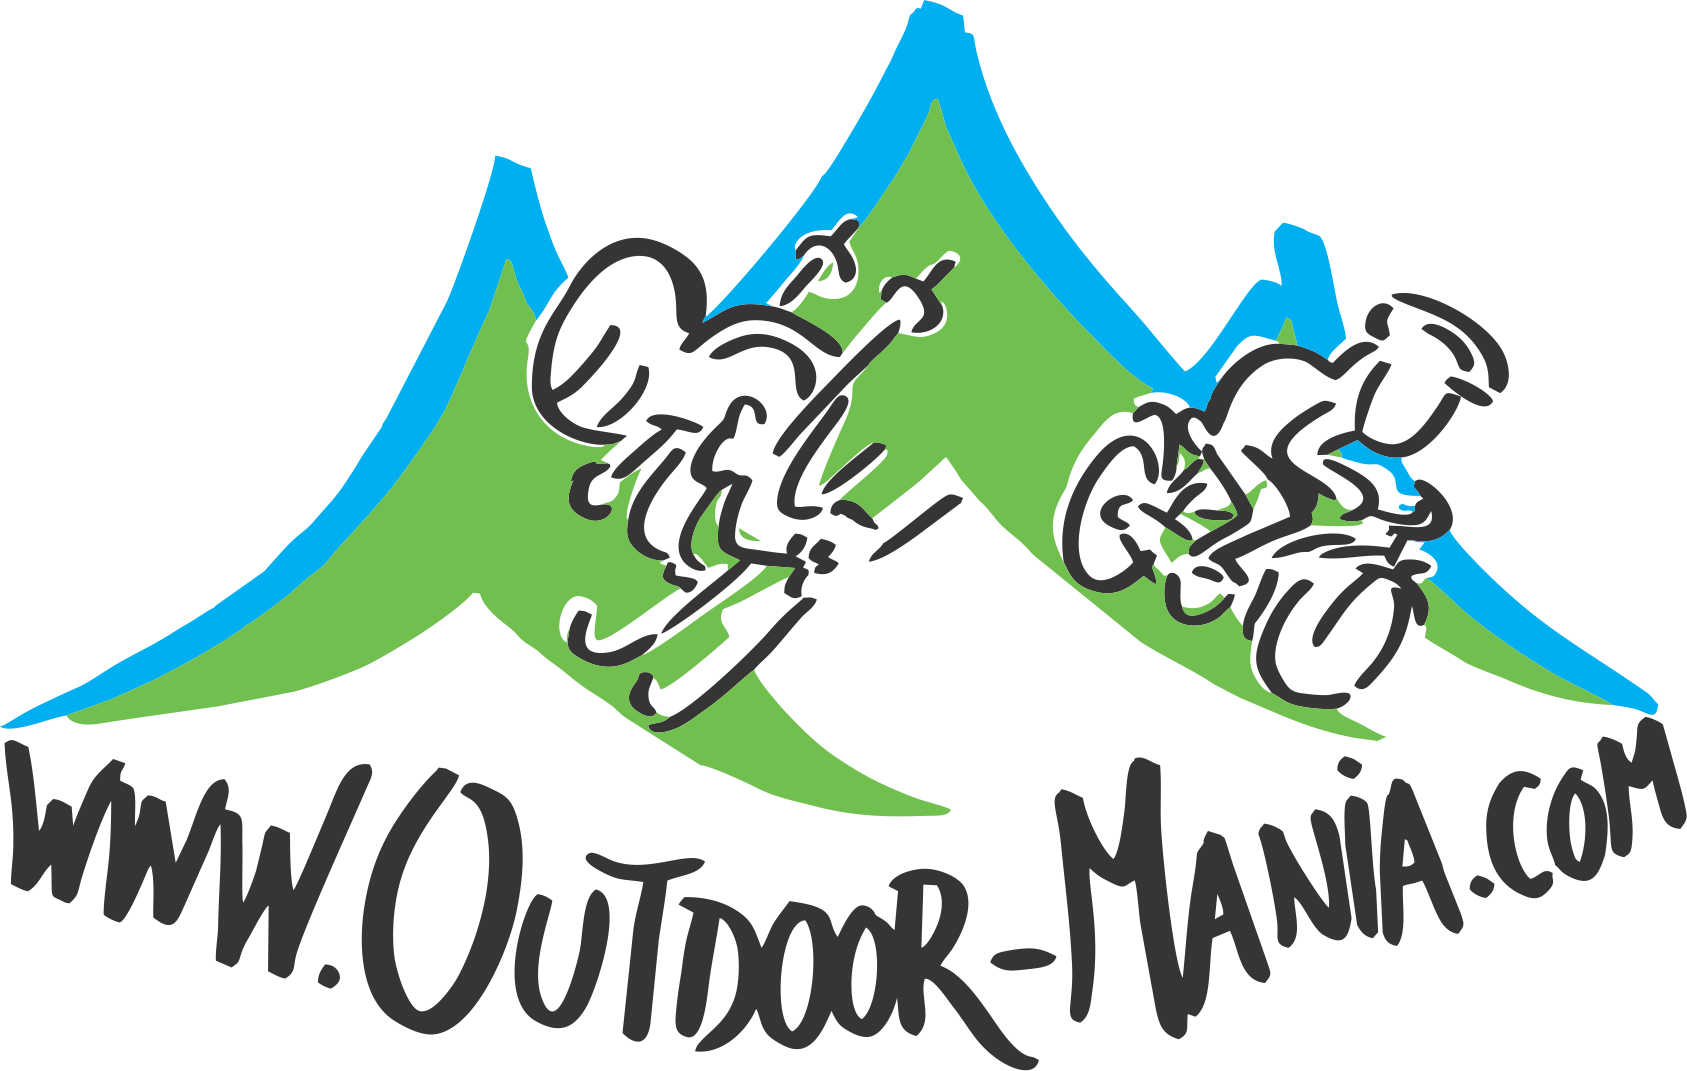 Welcome To Outdoor Mania